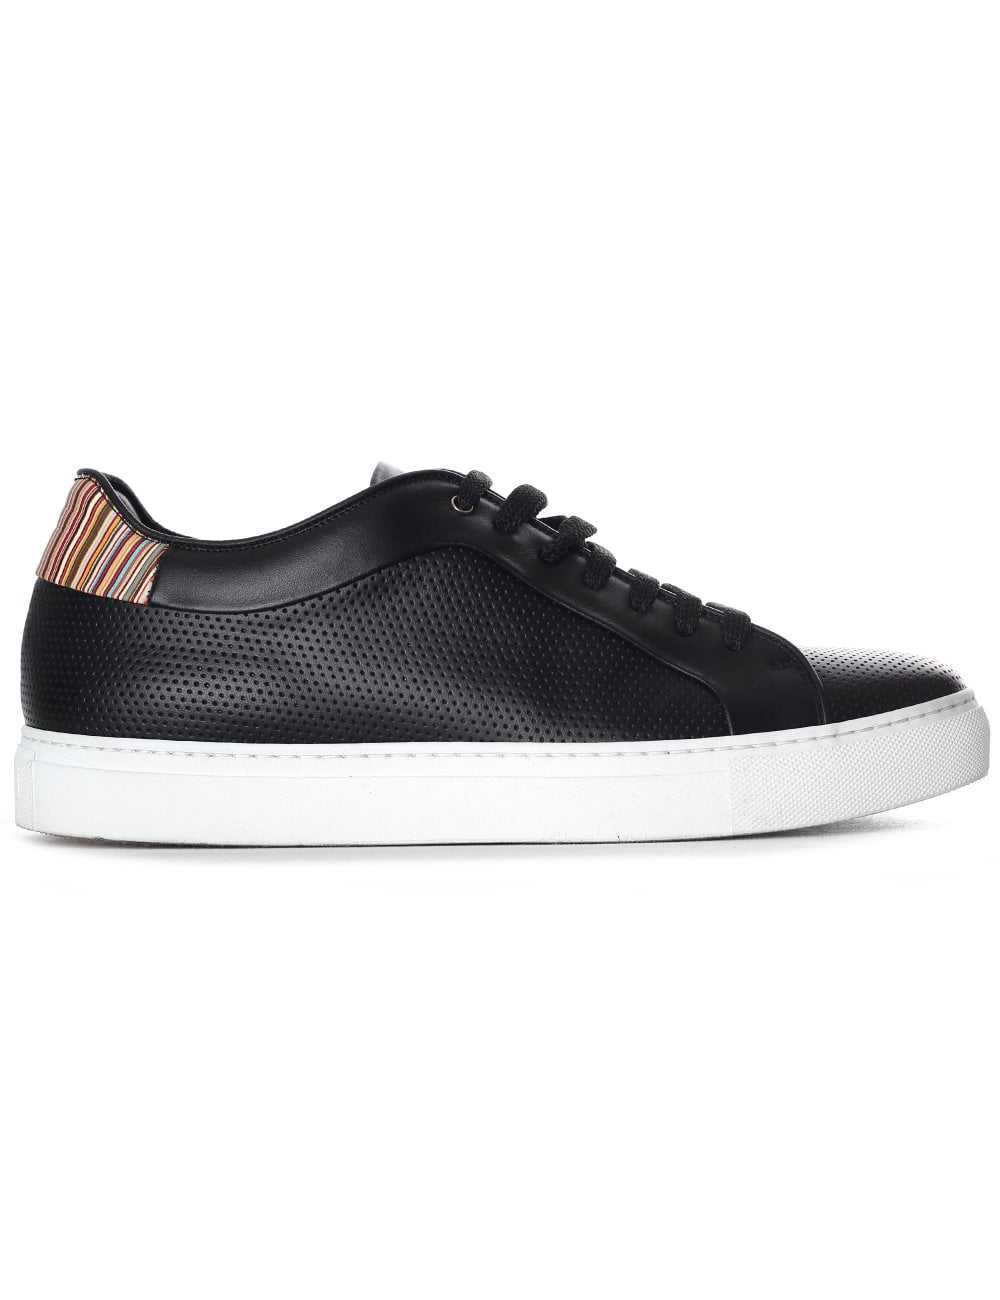 paul smith basso leather sneakers for